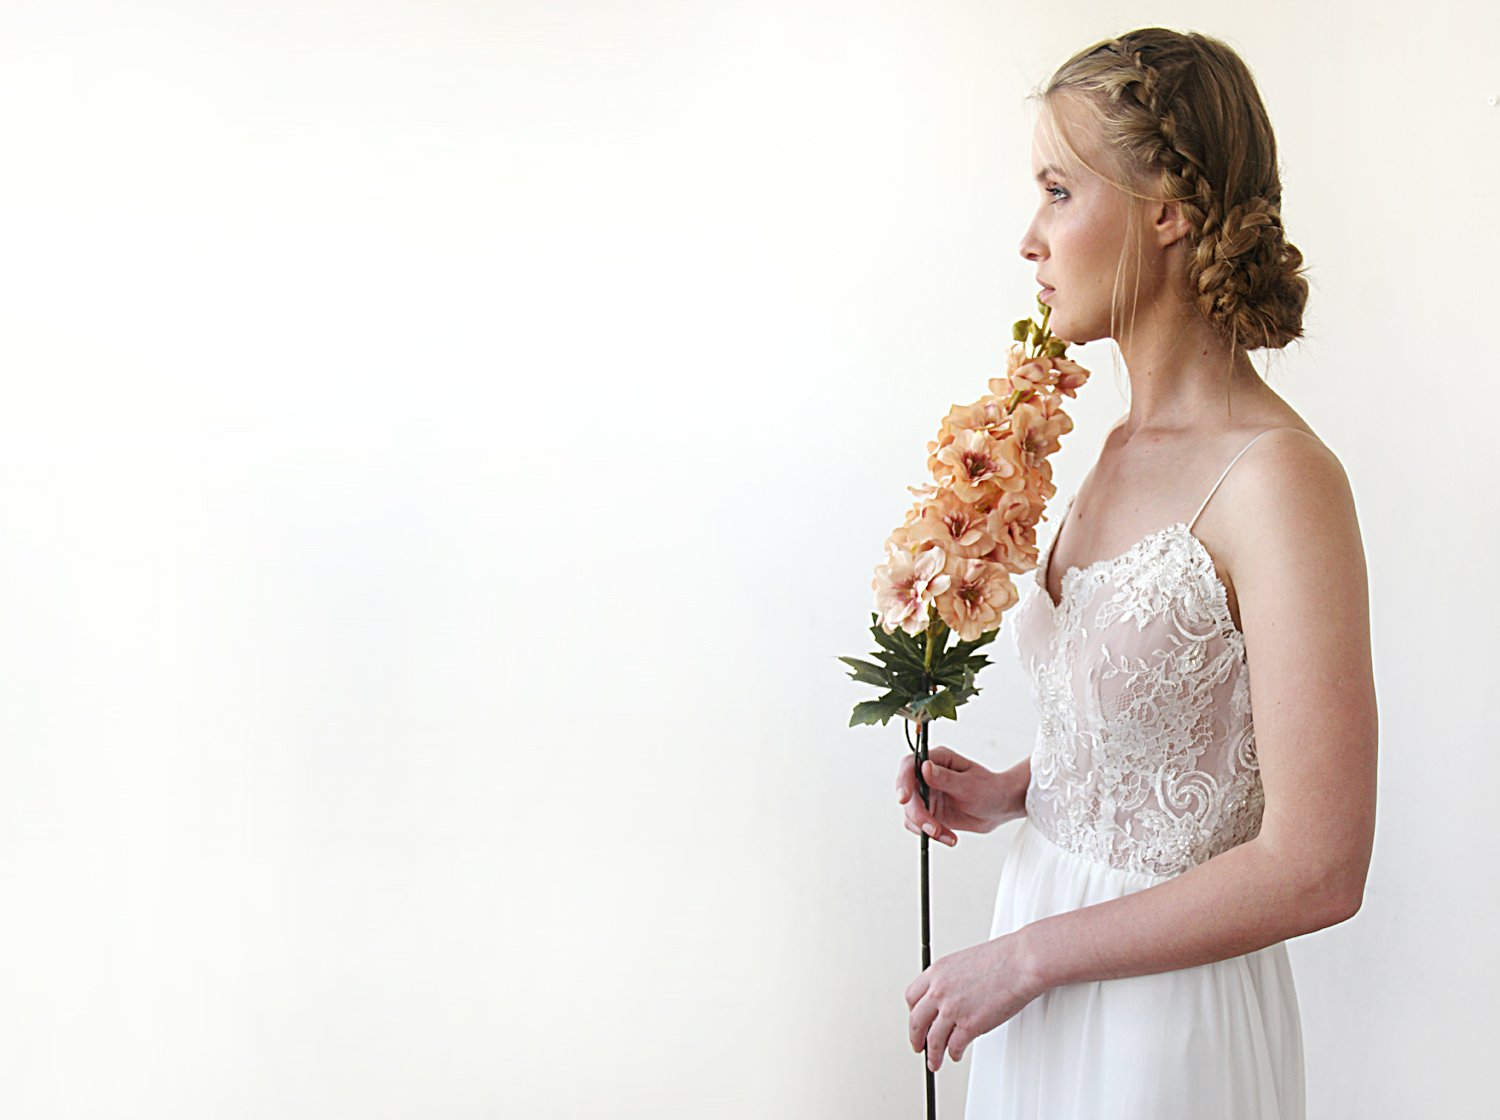 Custom Orders Only - Delicate Pearl Lace With Thin Straps, Lace And Chiffon Unique  Wedding Dress 1210 - Blushfashion